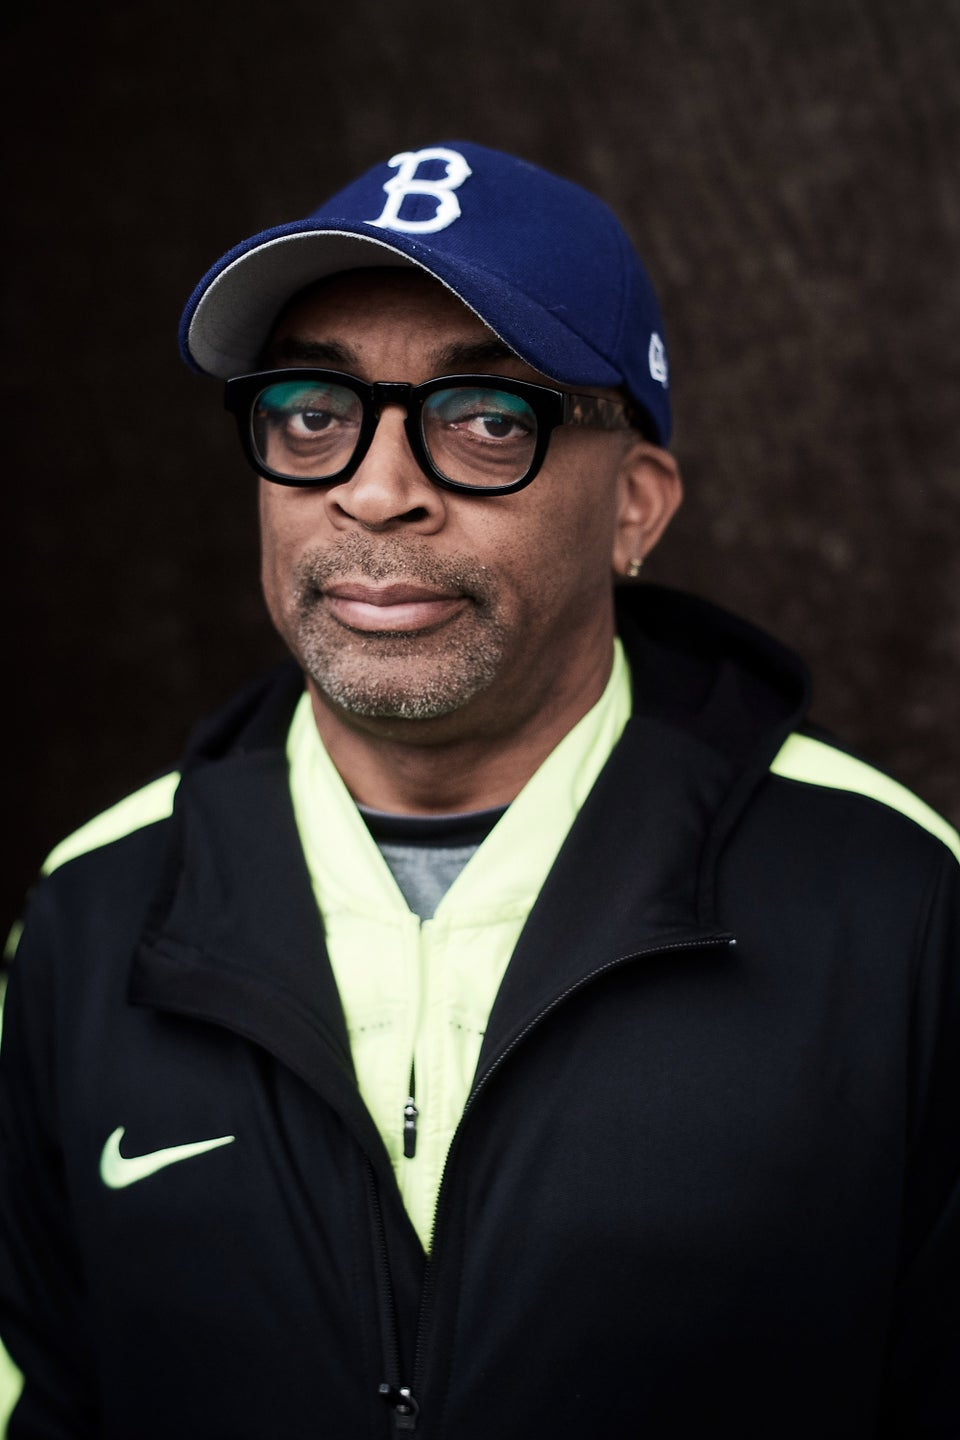 Spike Lee Claims He Told President Obama About Deadly Charlottesville Protests